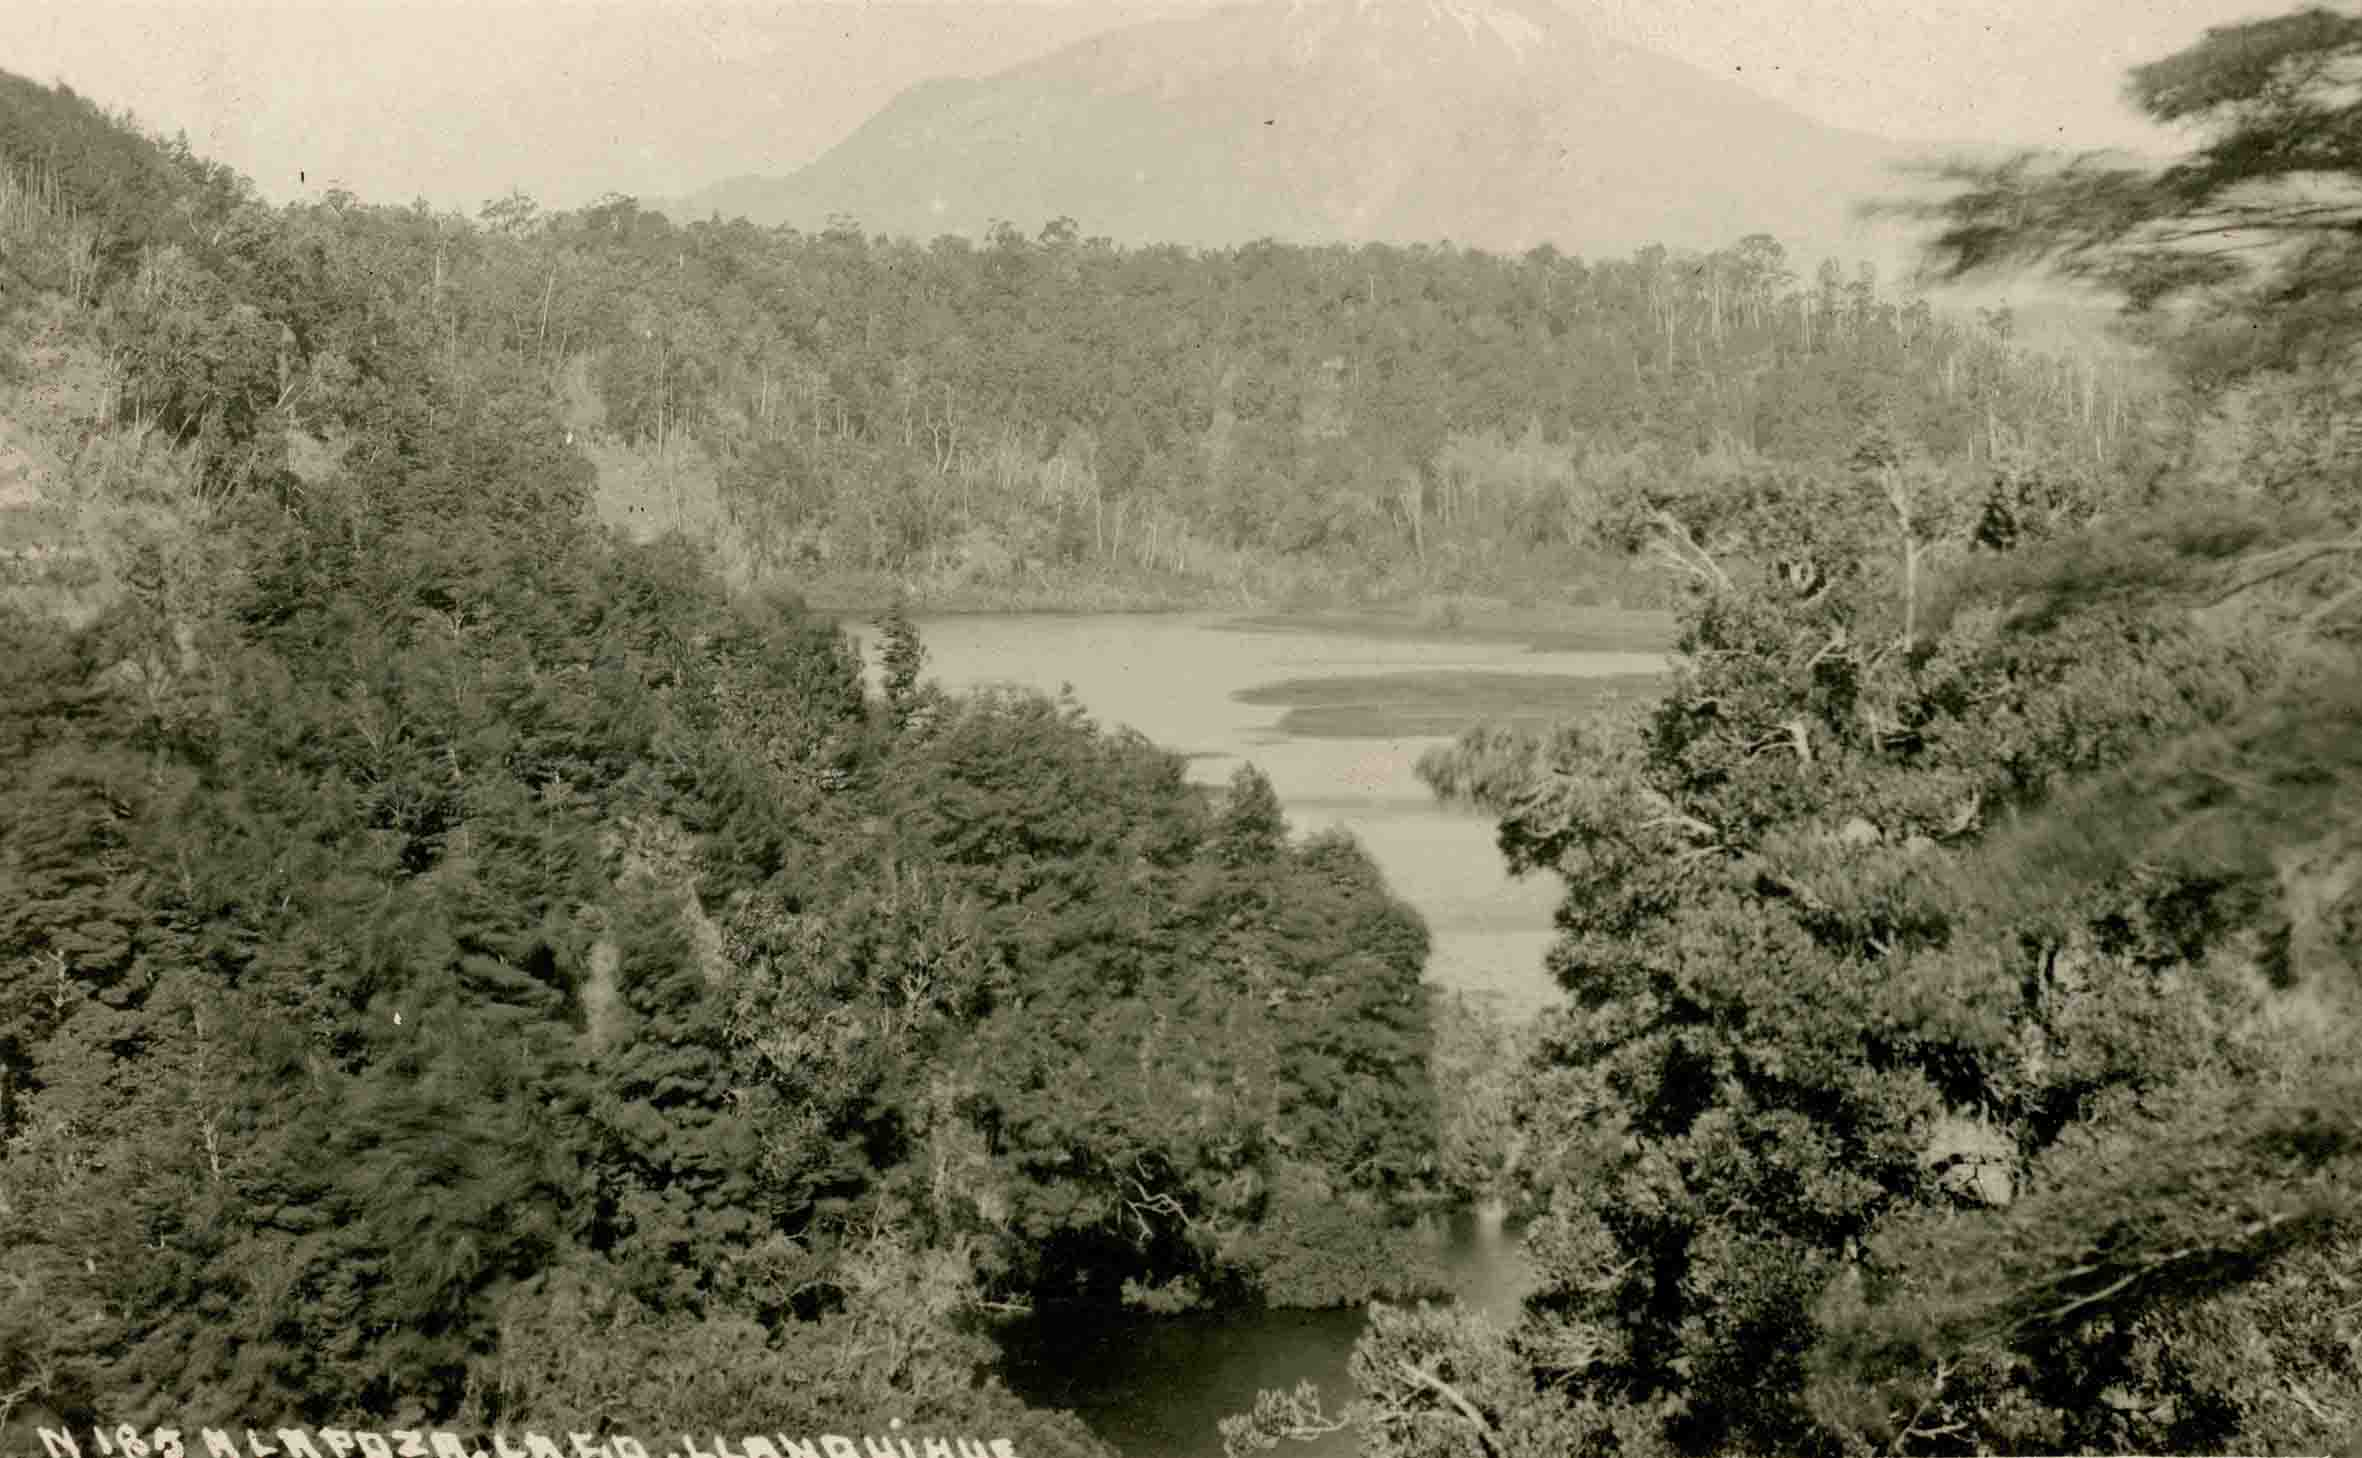 Enterreno - Fotos históricas de chile - fotos antiguas de Chile - La Poza, Lago Llanquihue ca. 1925